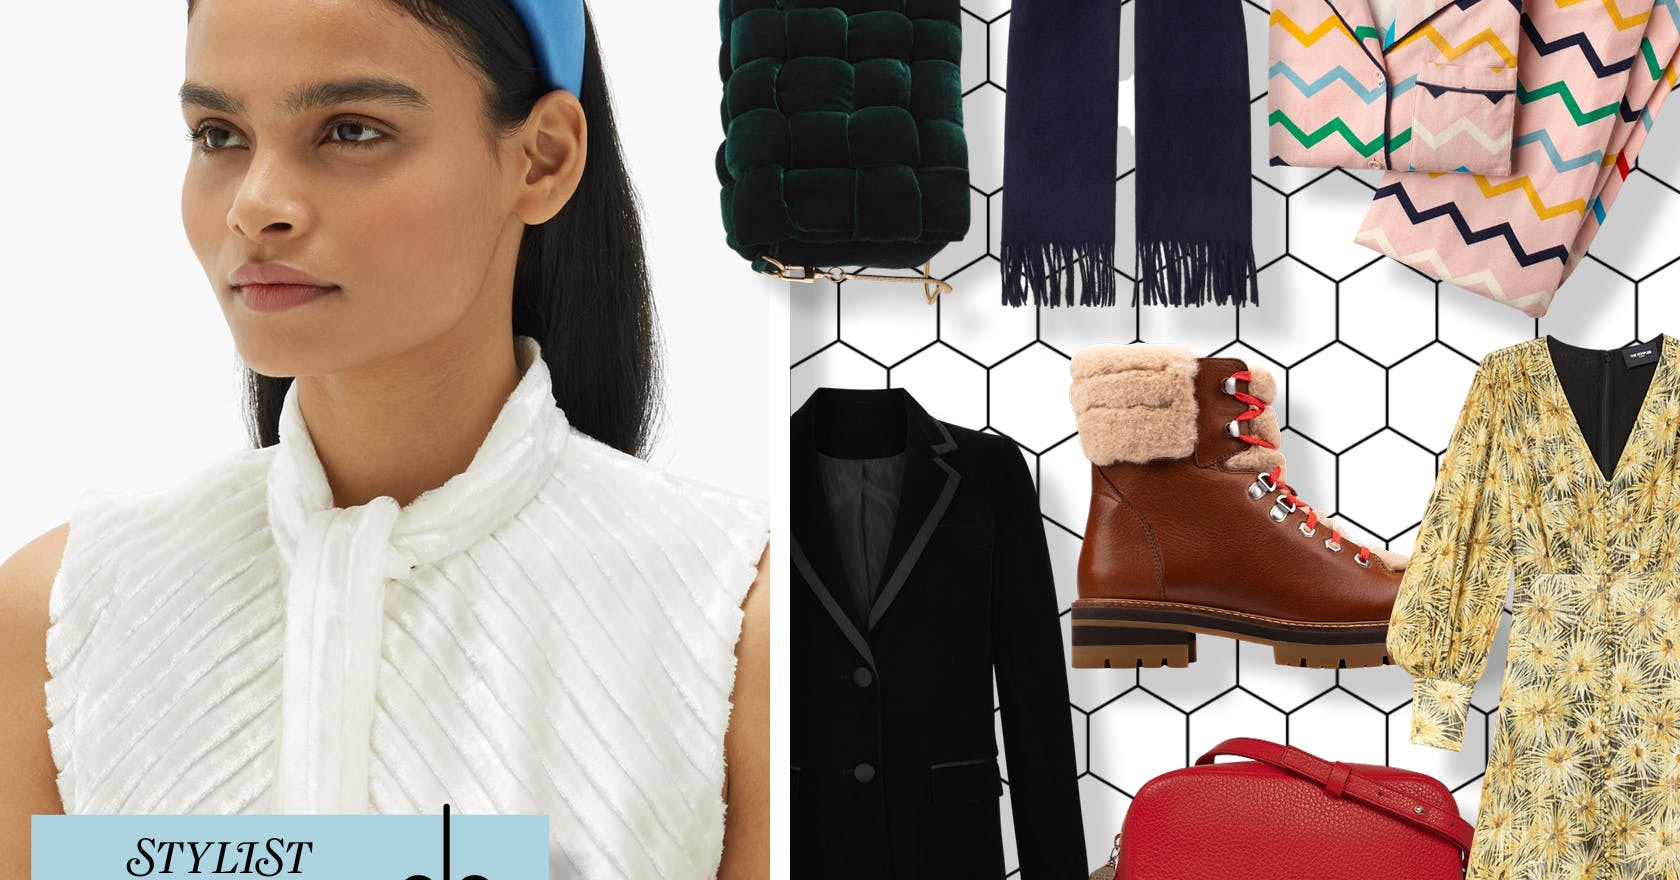 The 30 most stylish gifts for every woman this Christmas